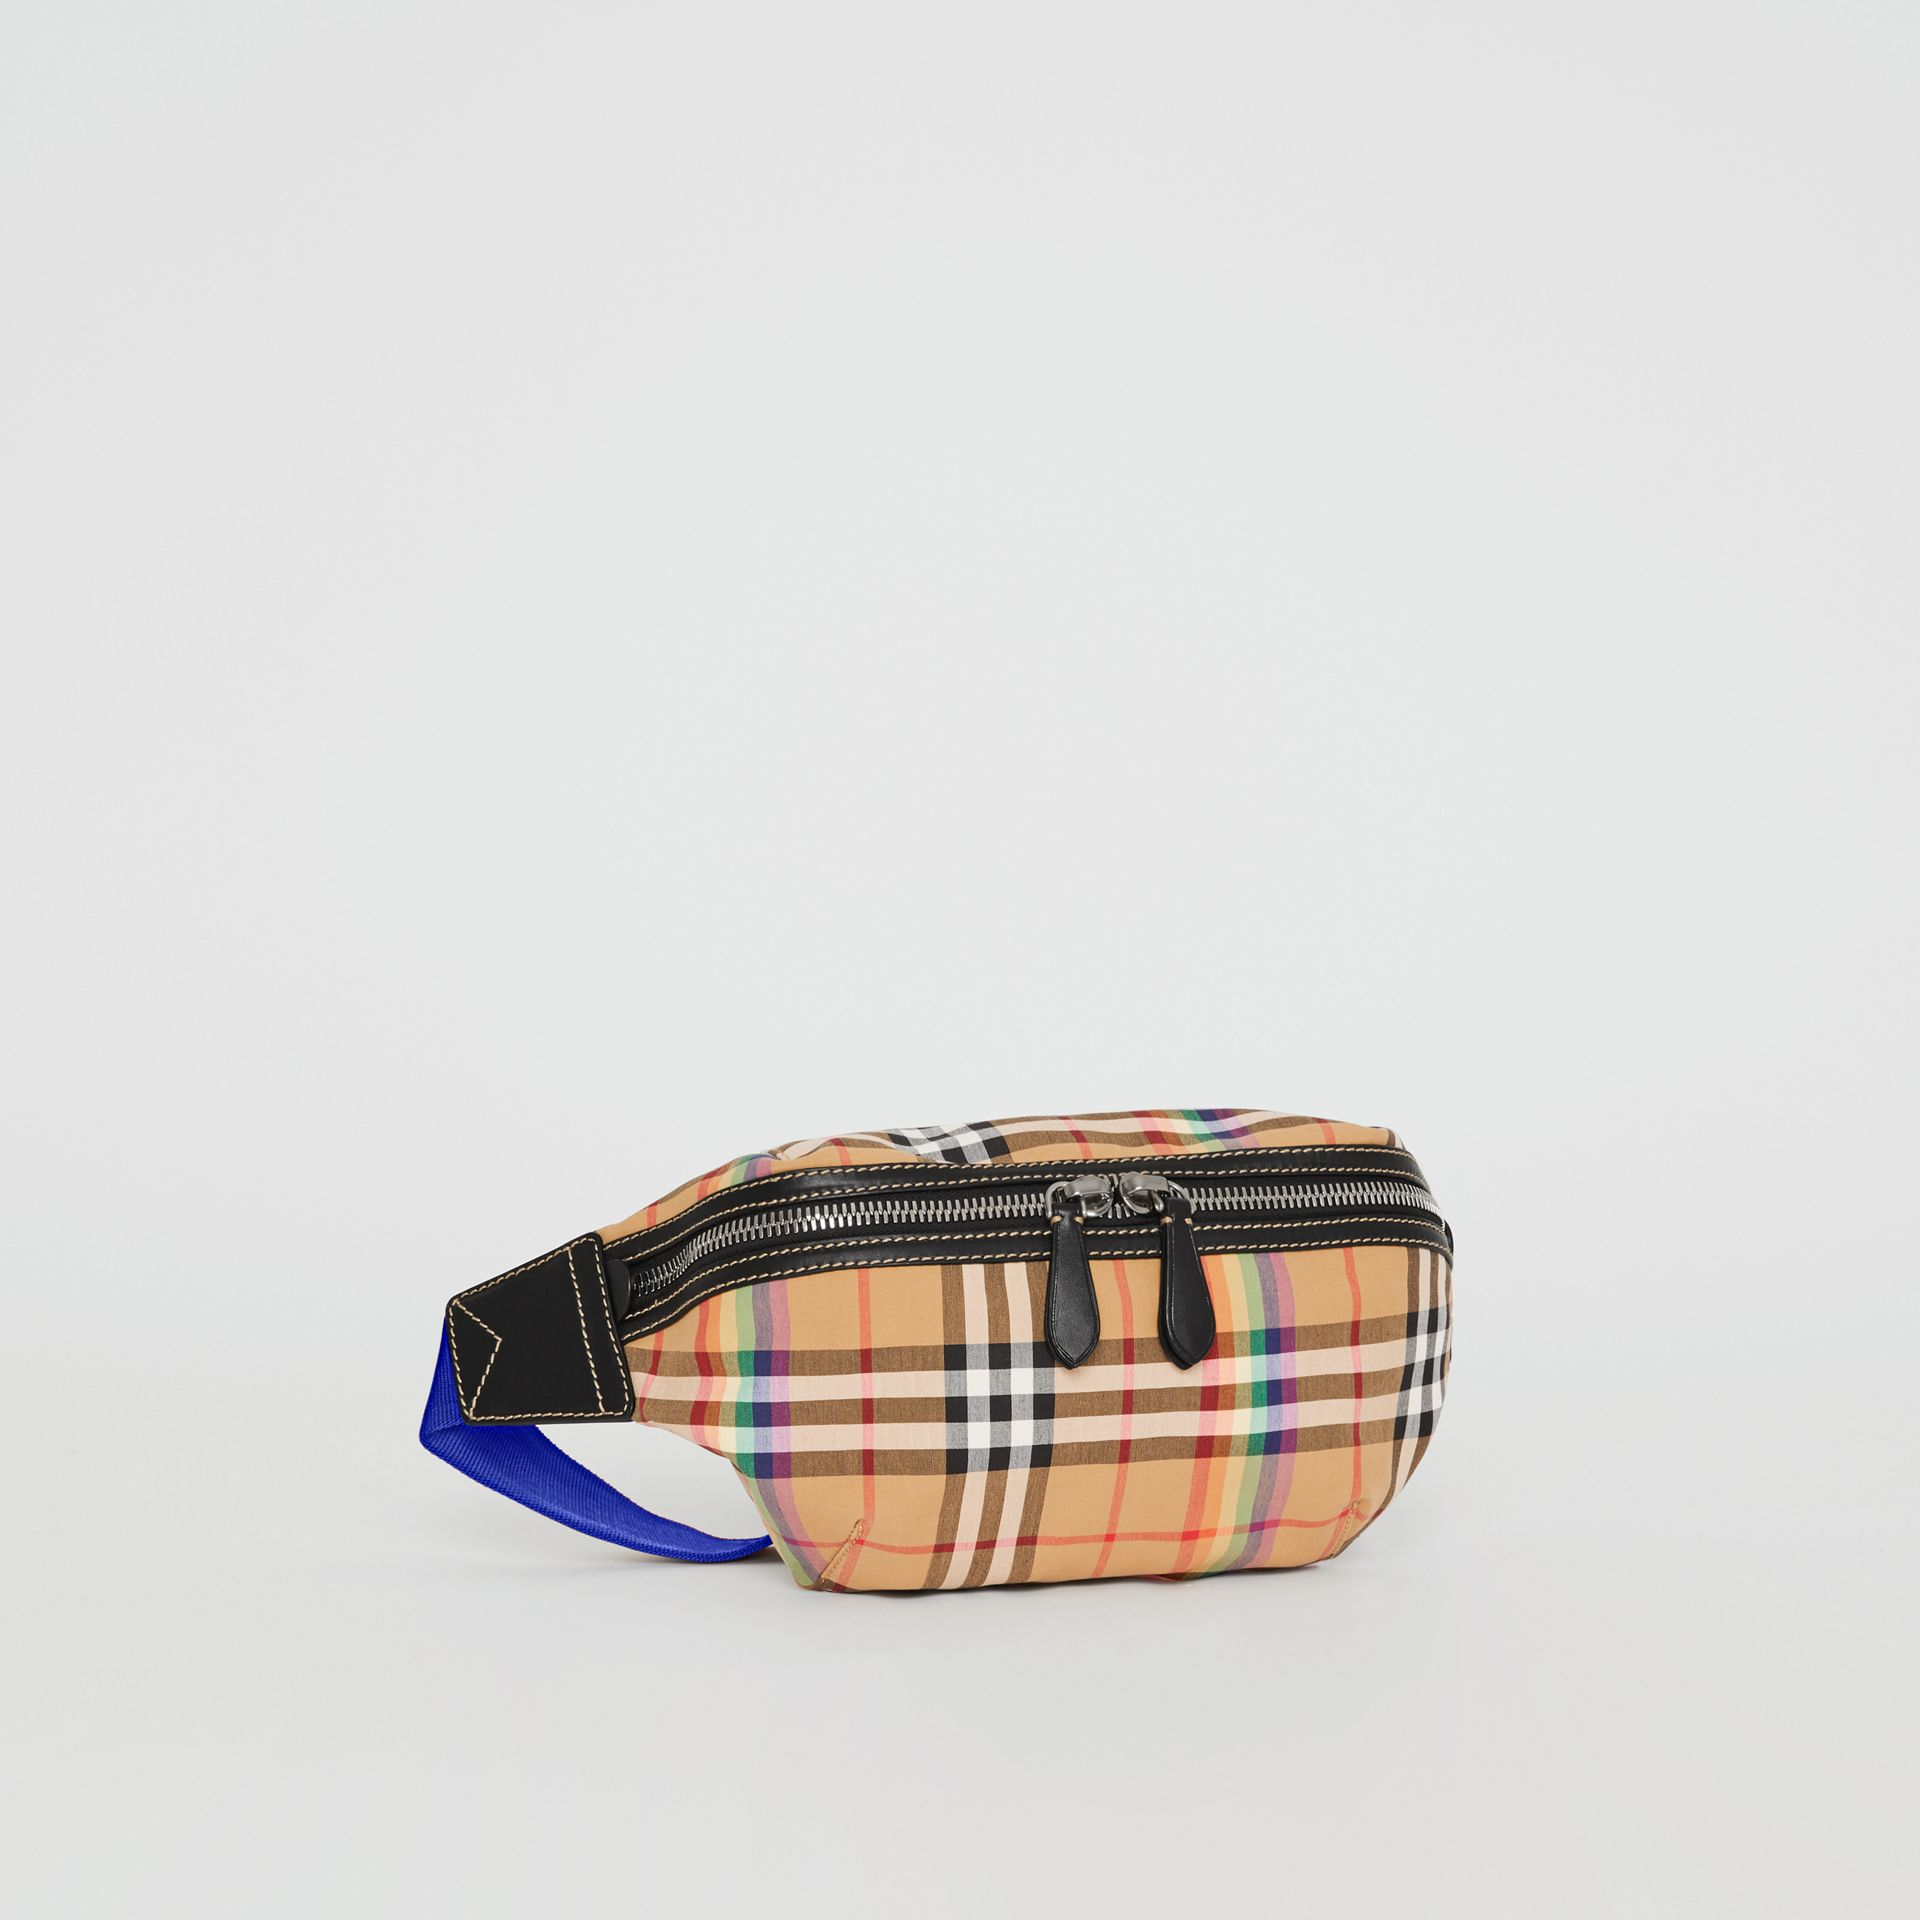 Medium Rainbow Vintage Check Bum Bag in Antique Yellow | Burberry United States - gallery image 7